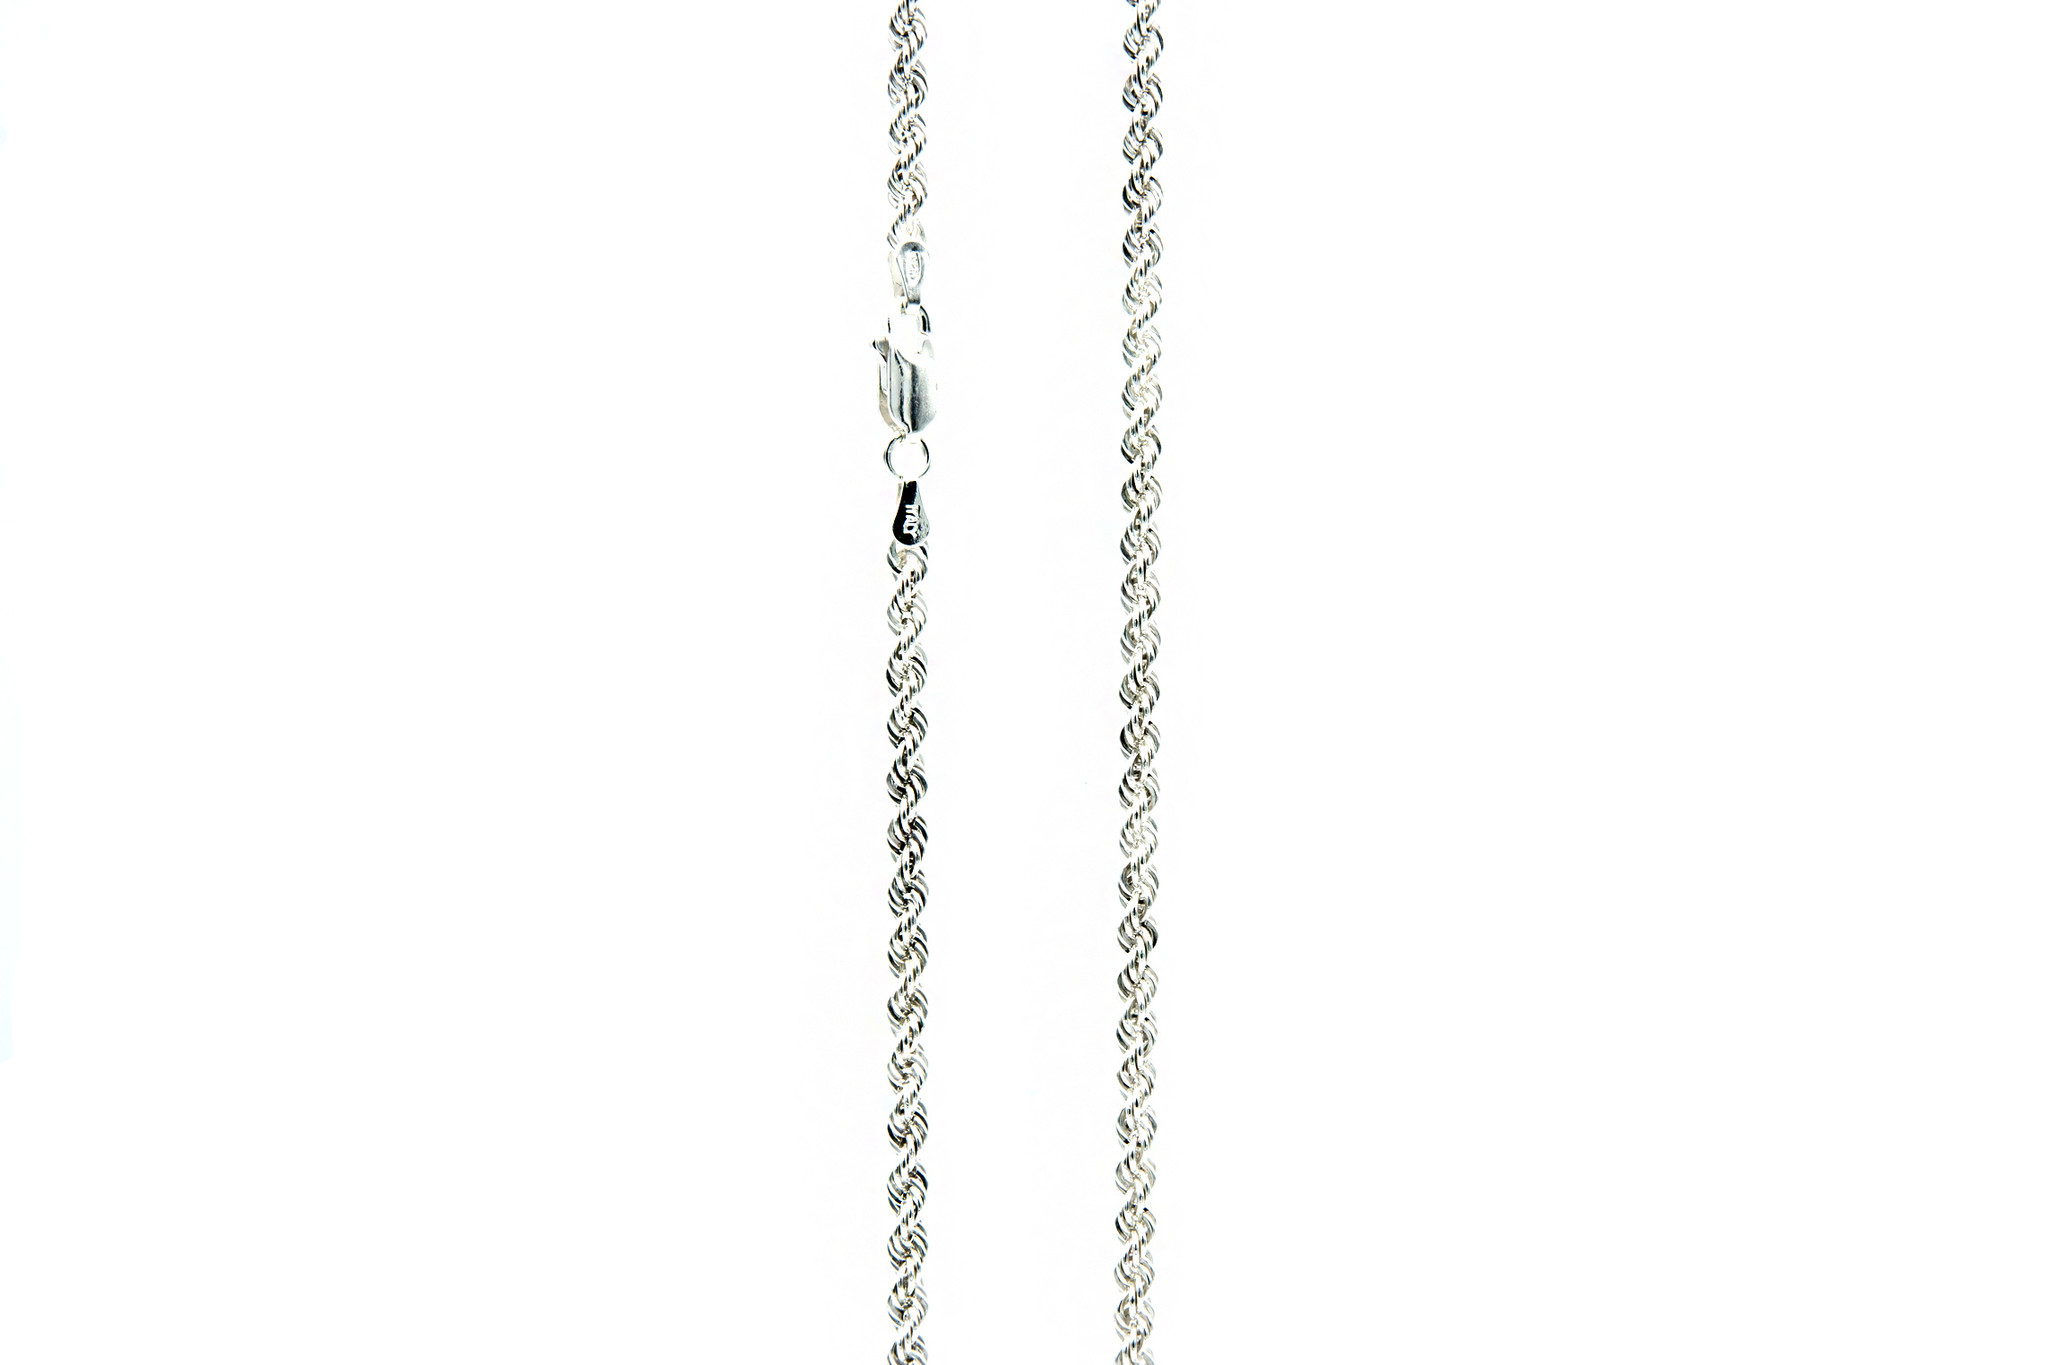 Ketting rope chain zilver-1